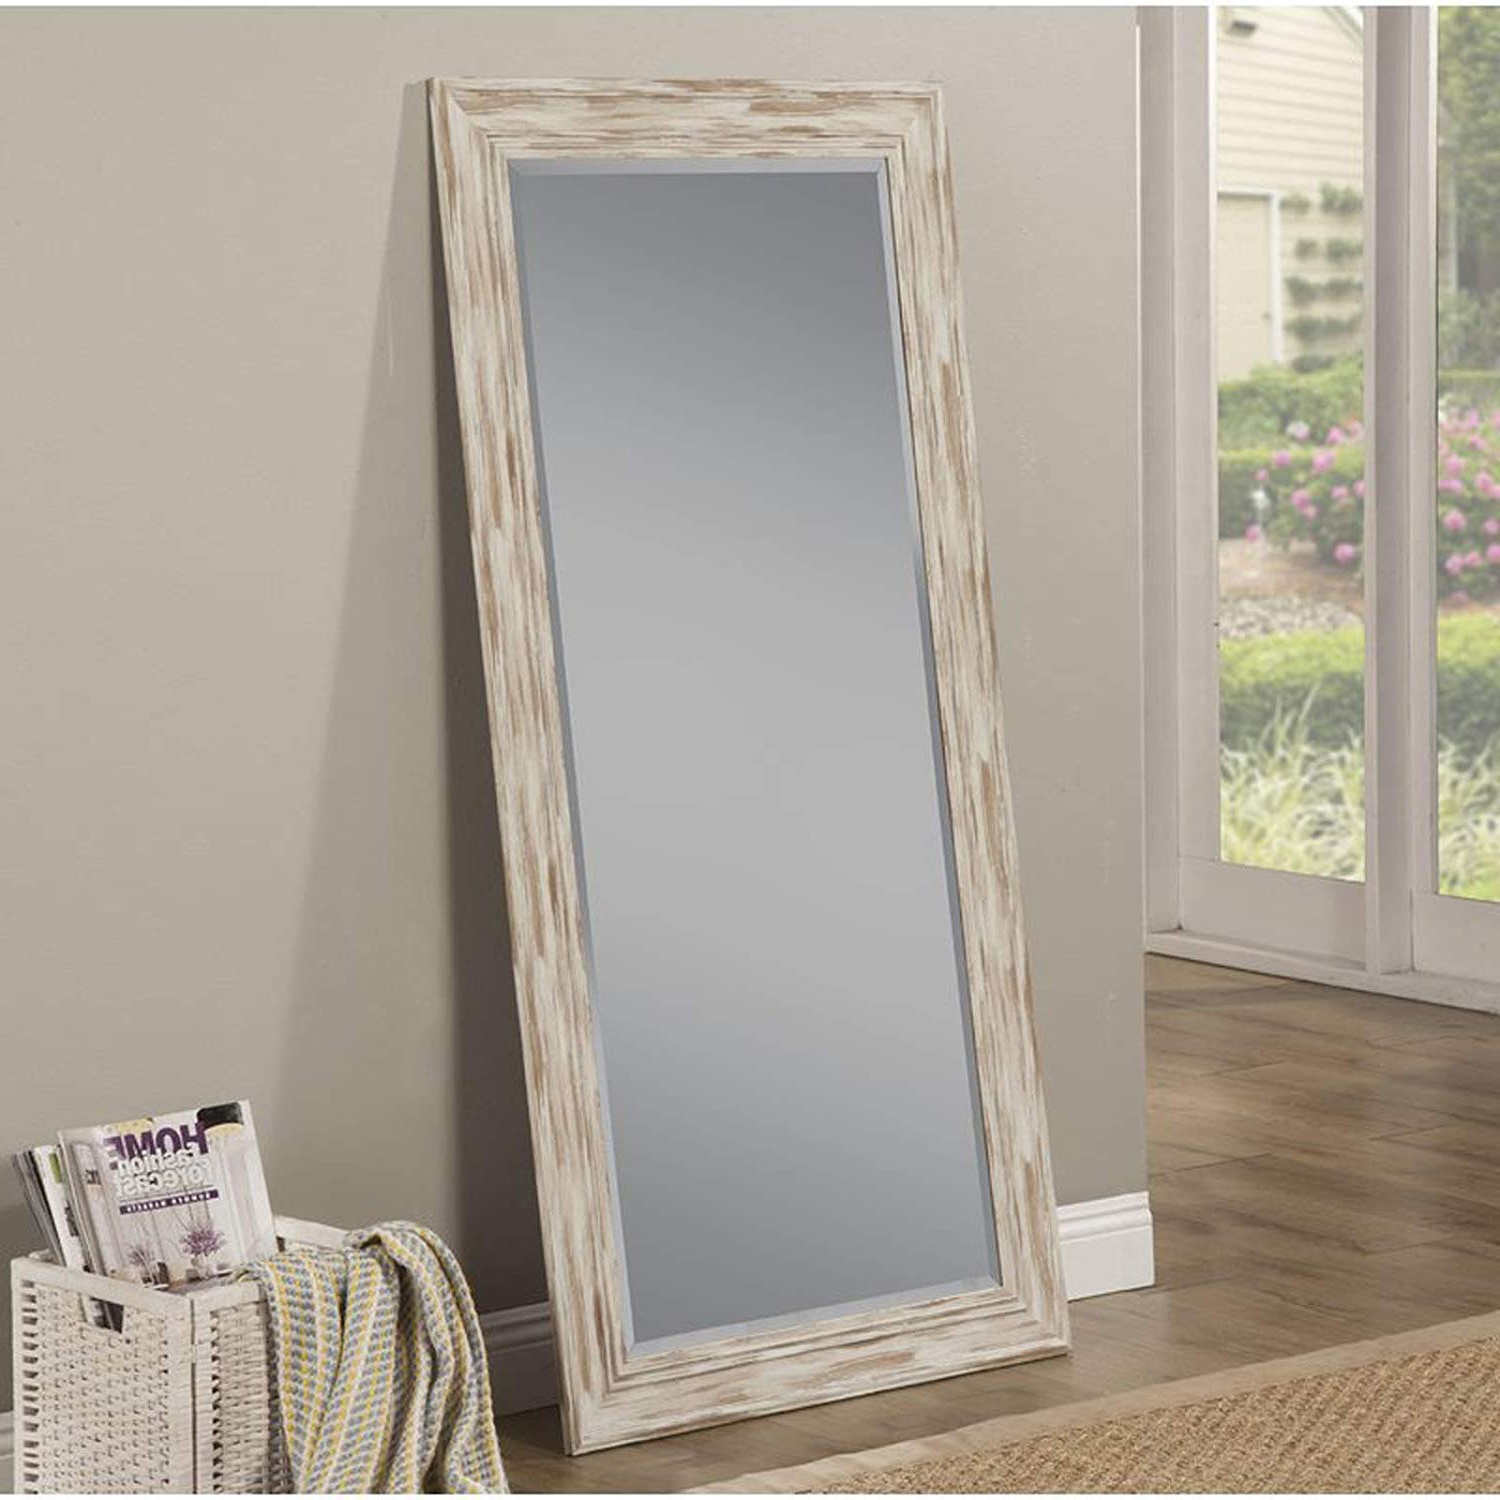 Full Length Wall Mirror – Rustic Rectangular Shape Horizontal & Vertical Mirror – Can Be Use In Living Room, Bedroom, Entryway Or Bathroom (Antique Intended For 2019 Vertical Wall Mirrors (View 2 of 20)